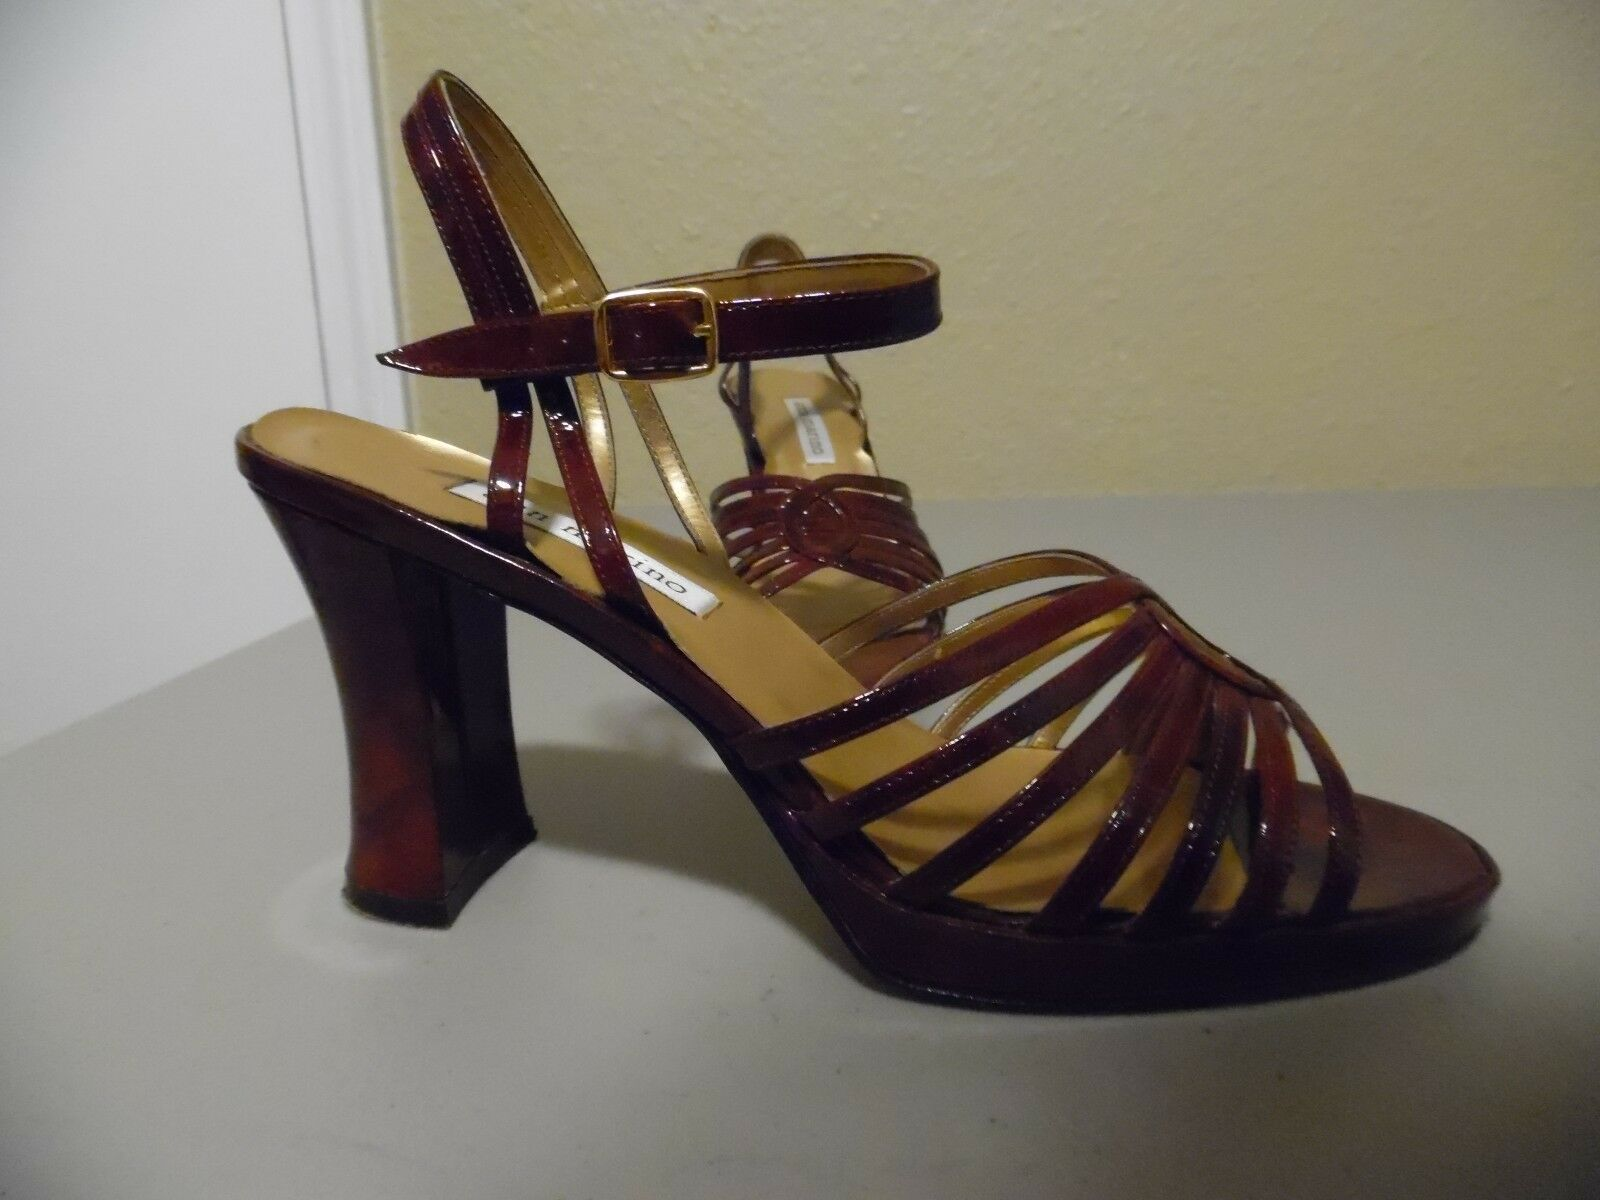 ANN MARINO Ladies Teens Brown Patent Leather Heels Shoes Strappy Sz 8.5 M